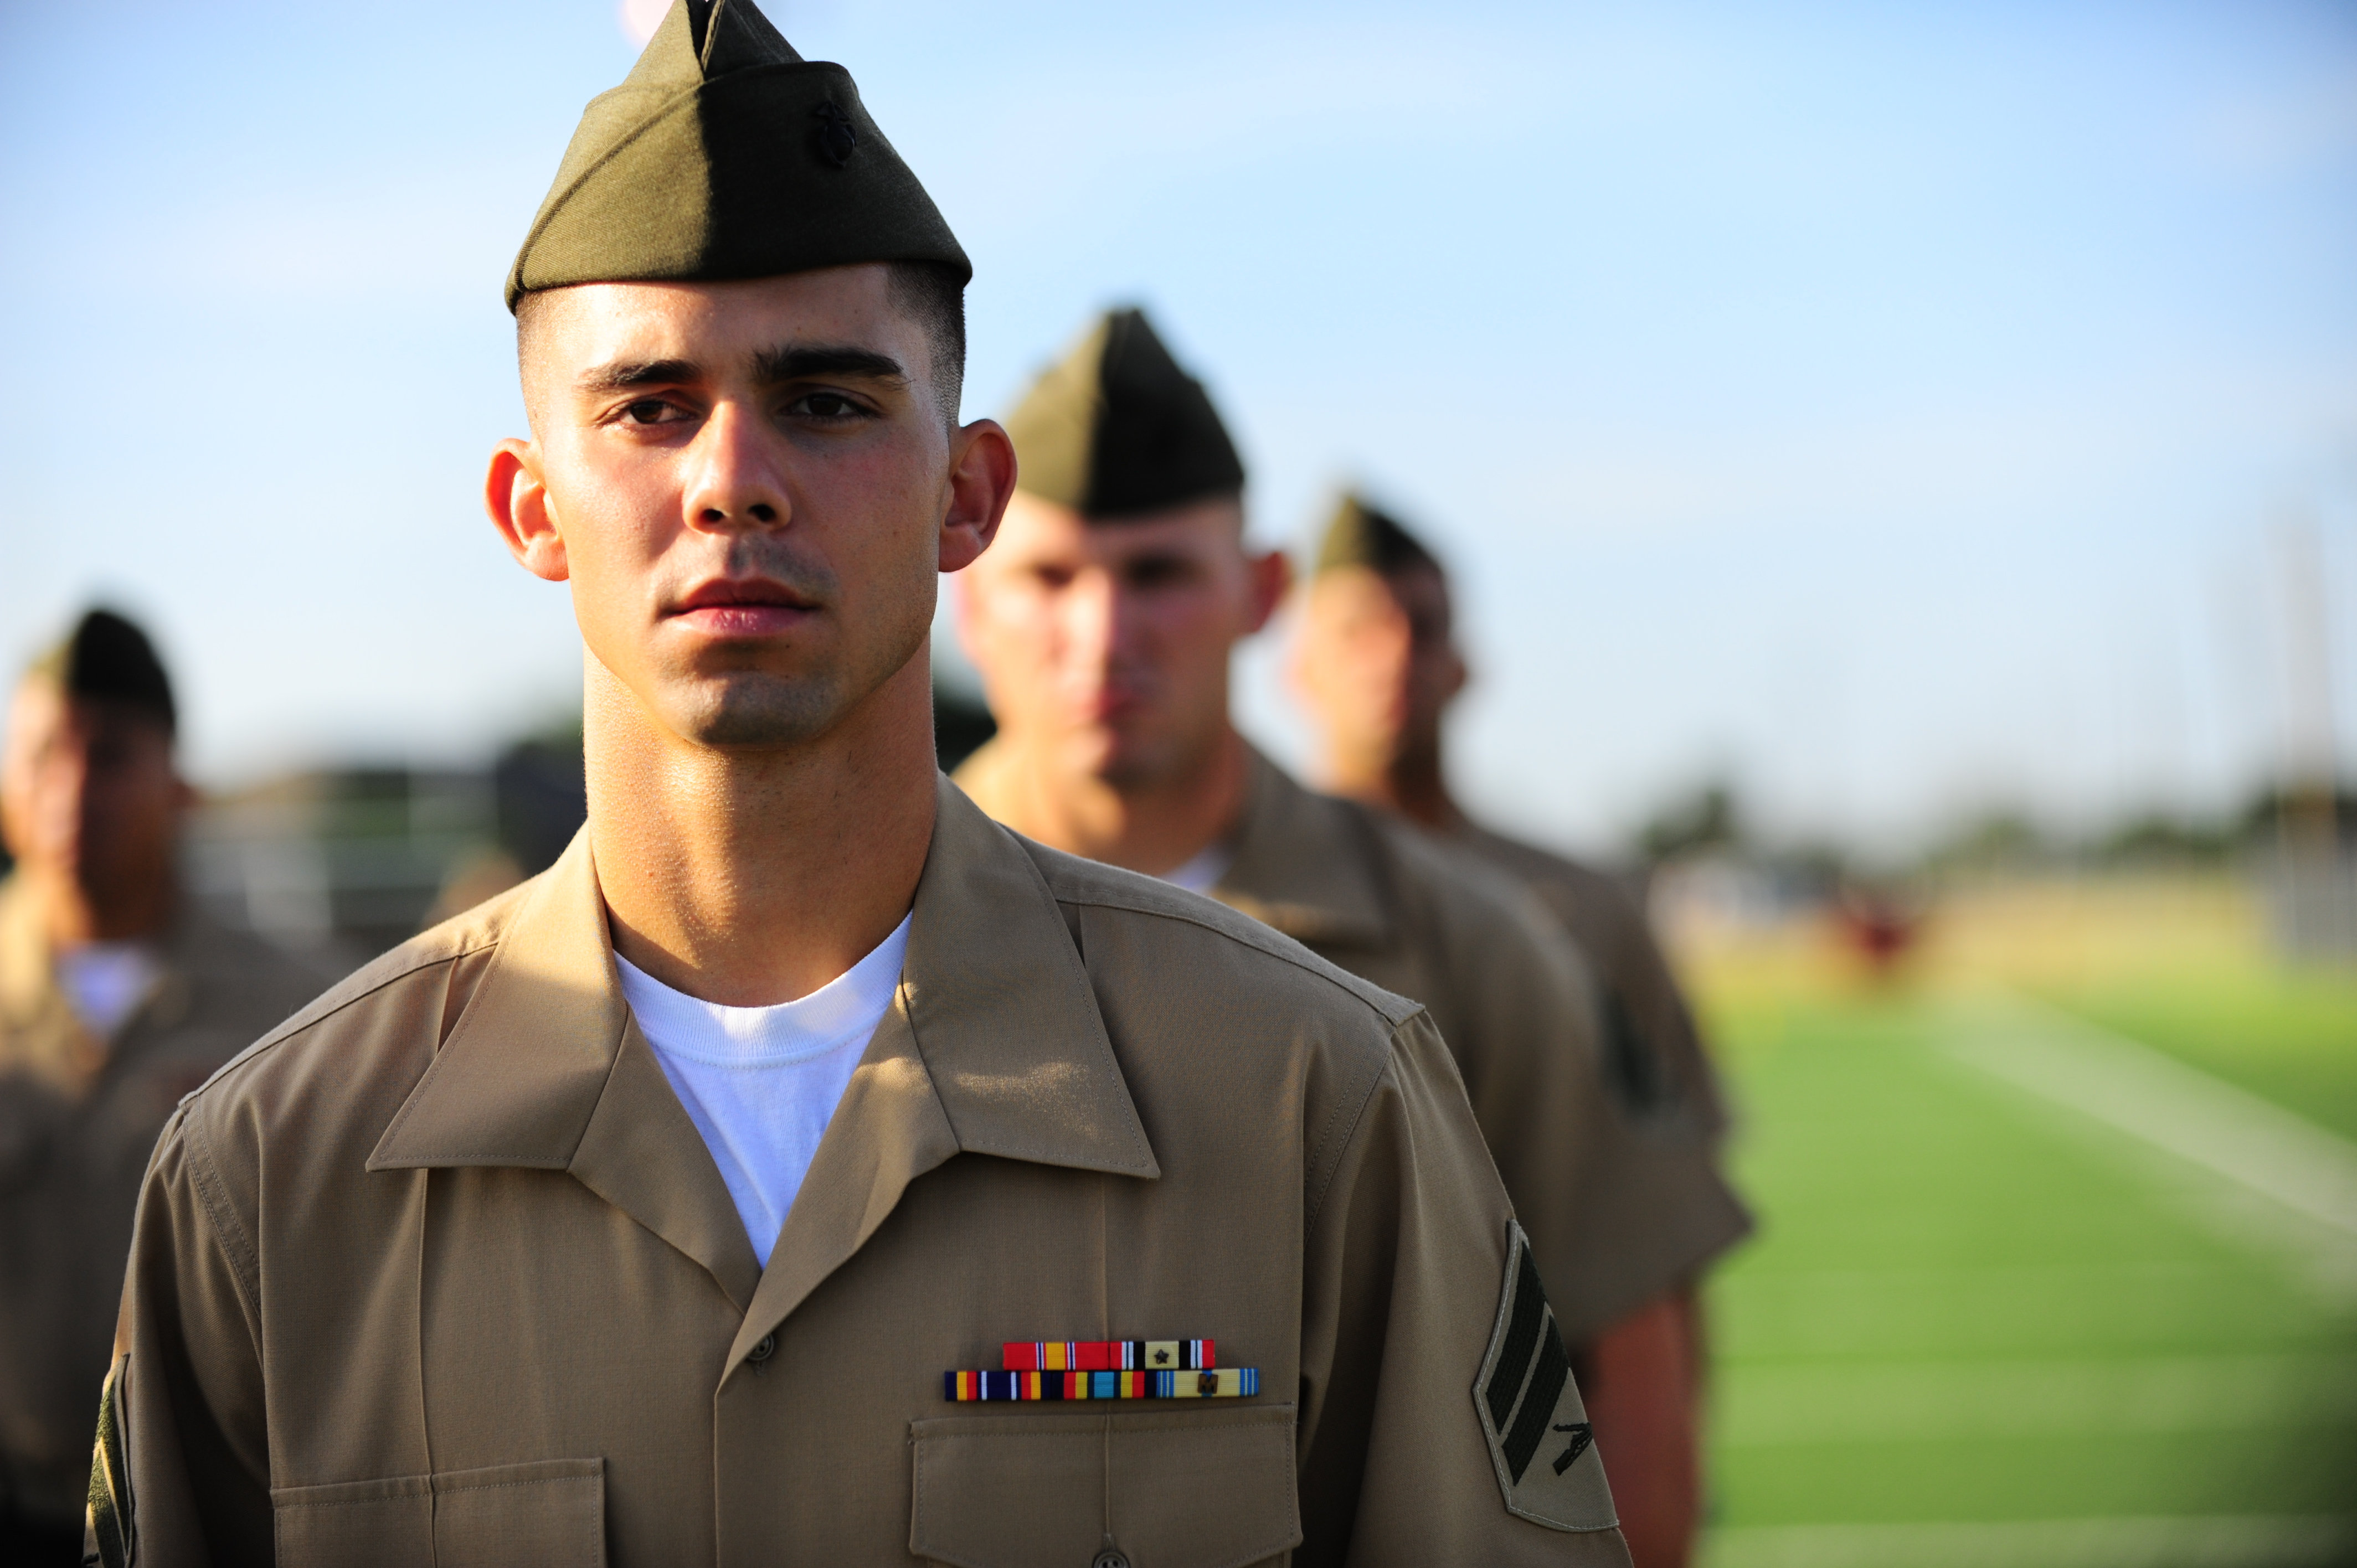 corporals course Answers to marinenet corporals course answers to marinenet leading marines answers to marinenet course leading marines answers to marinenet hmmwv courses.